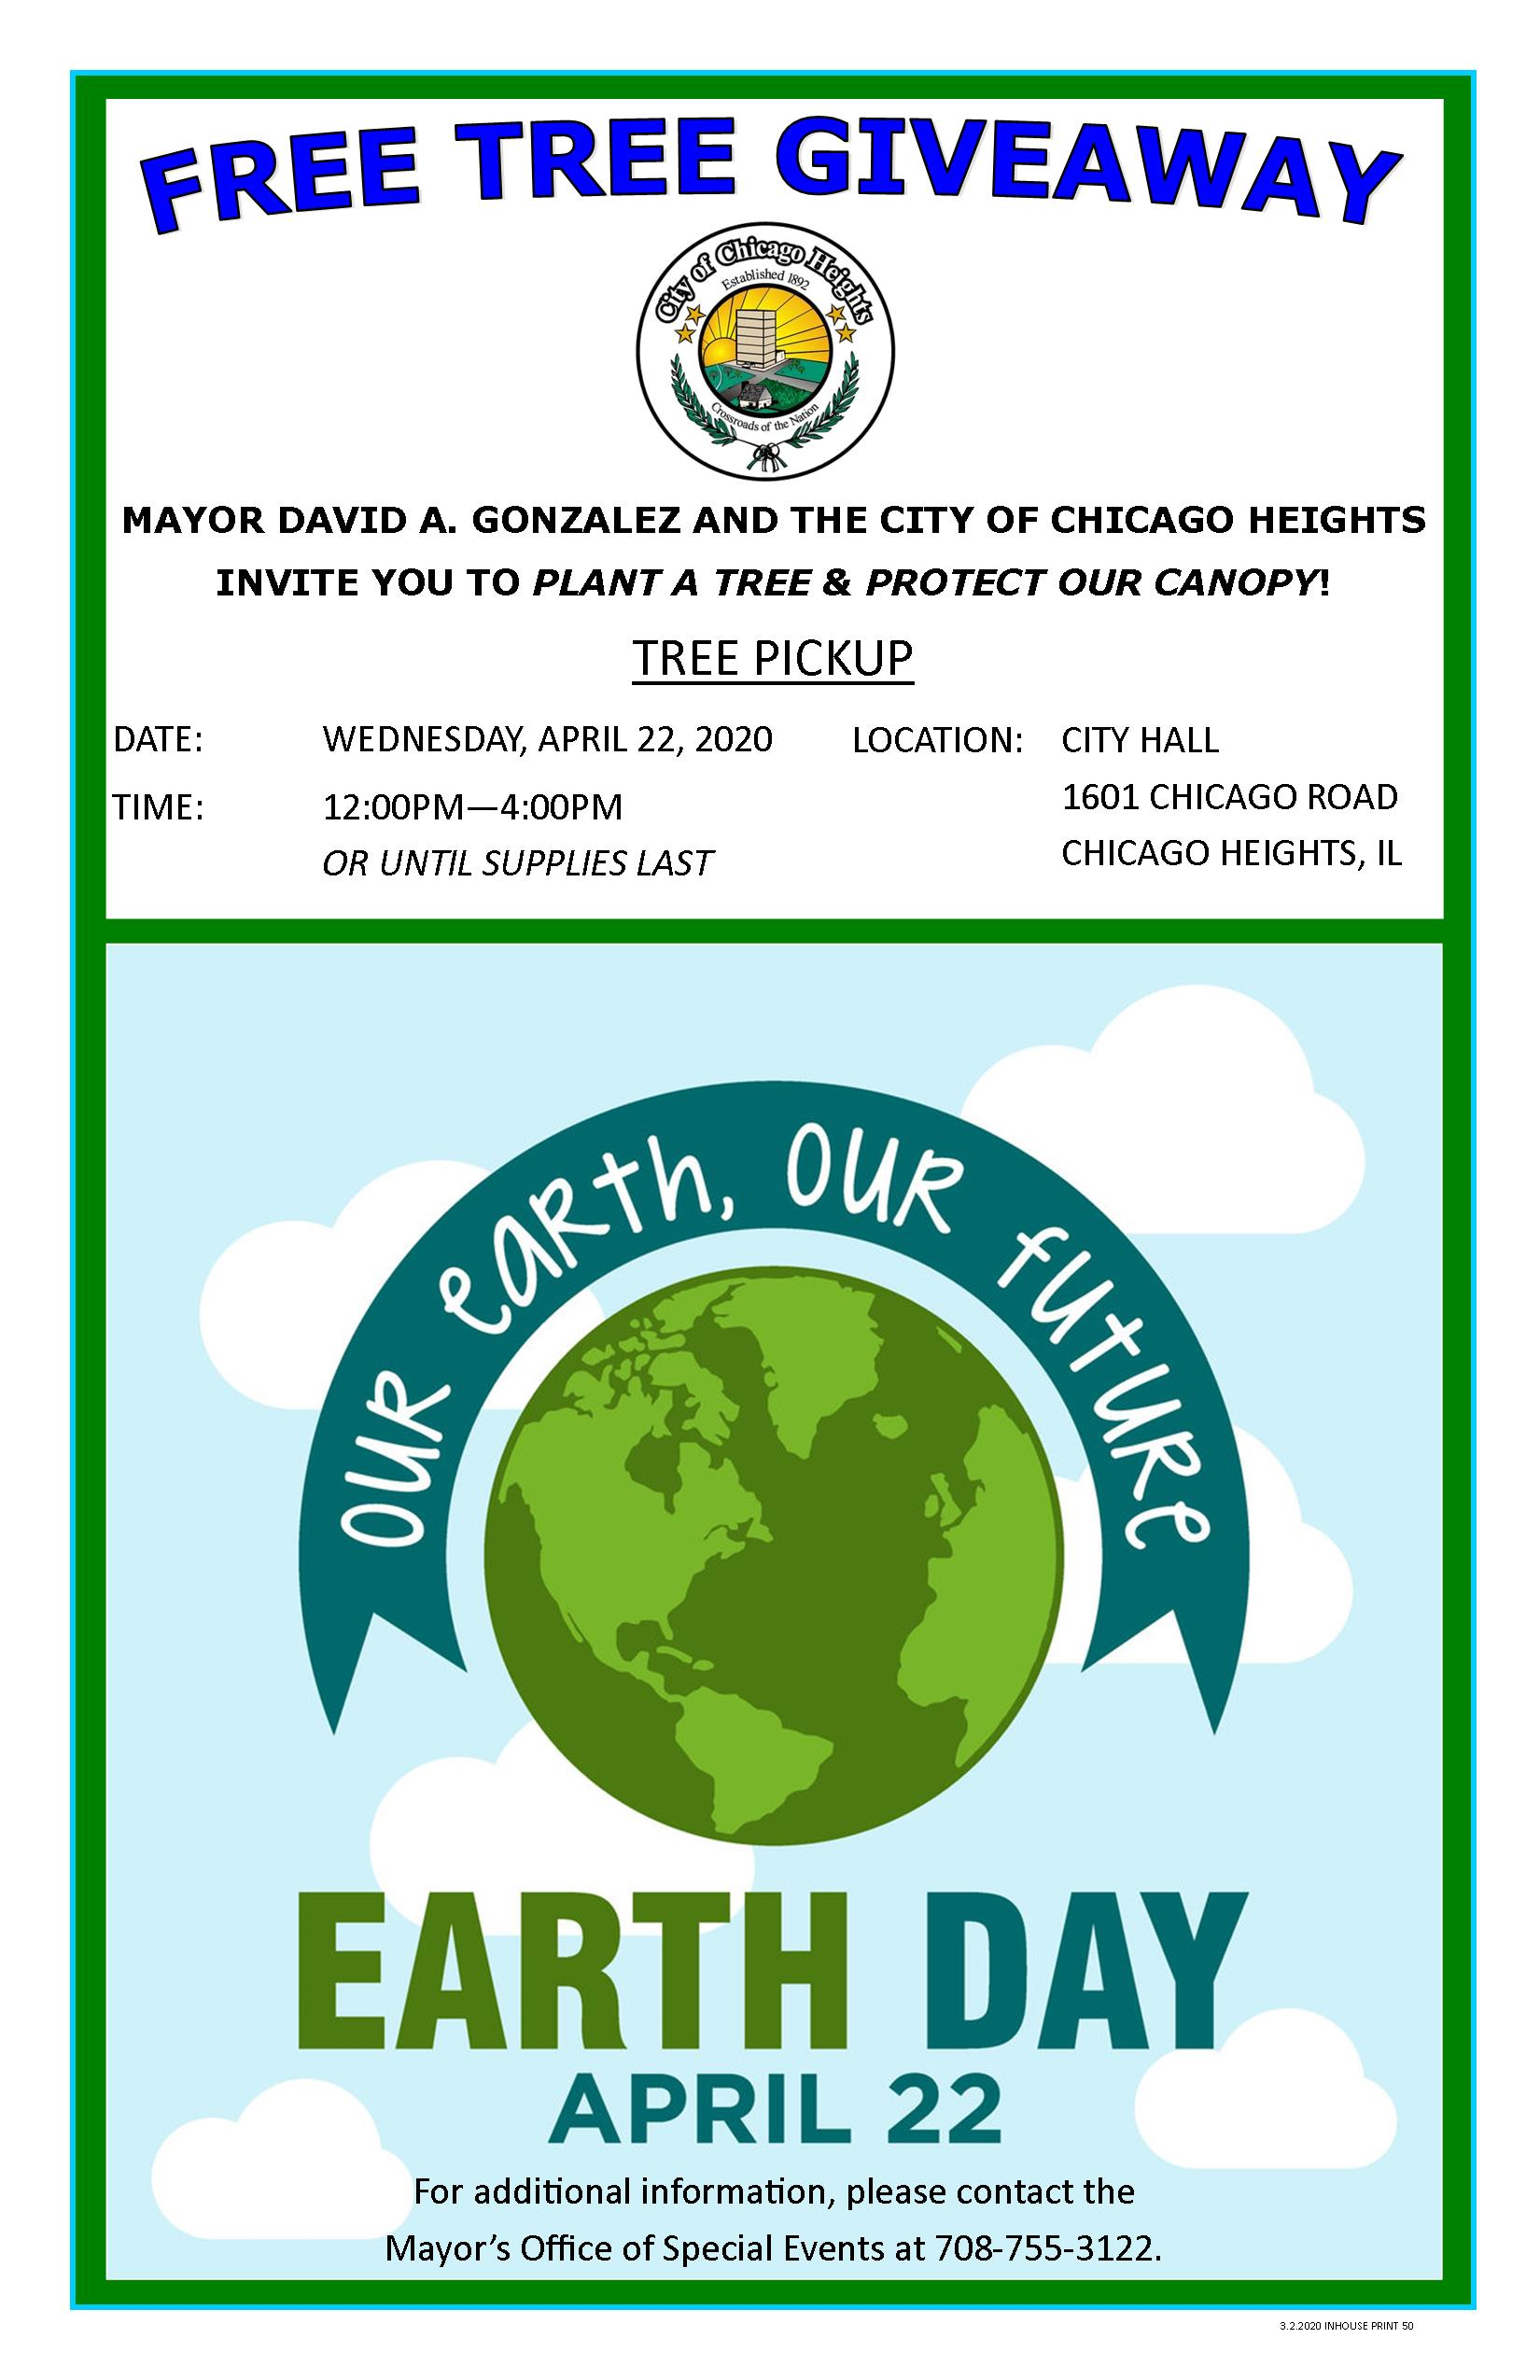 2020 - Earth Day Poster - Free Tree Giveaway